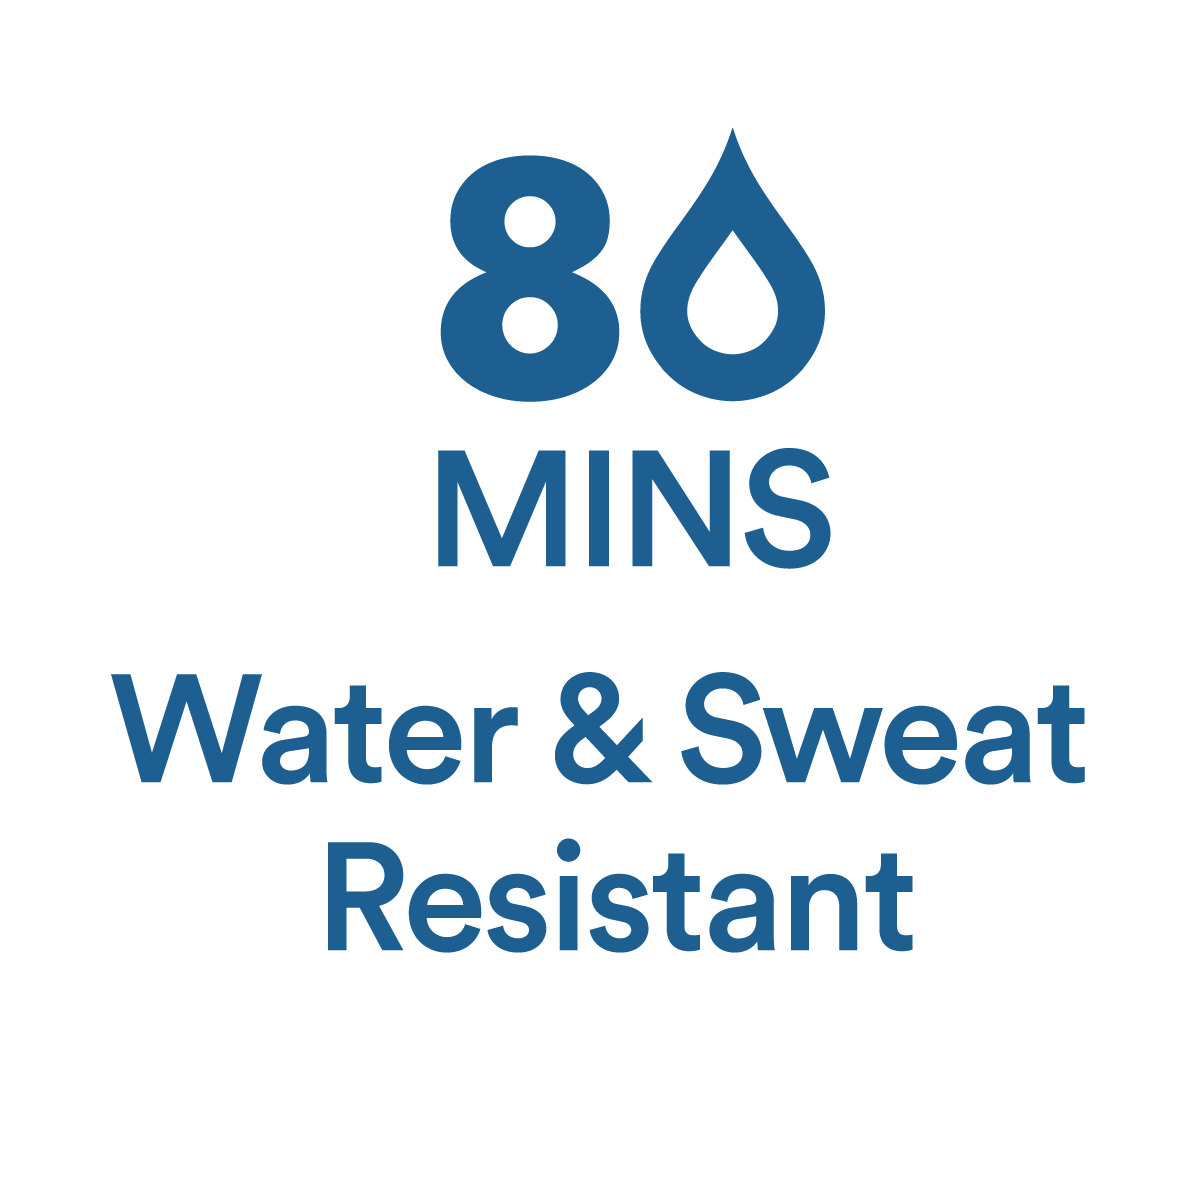 Water and Sweat Resistant